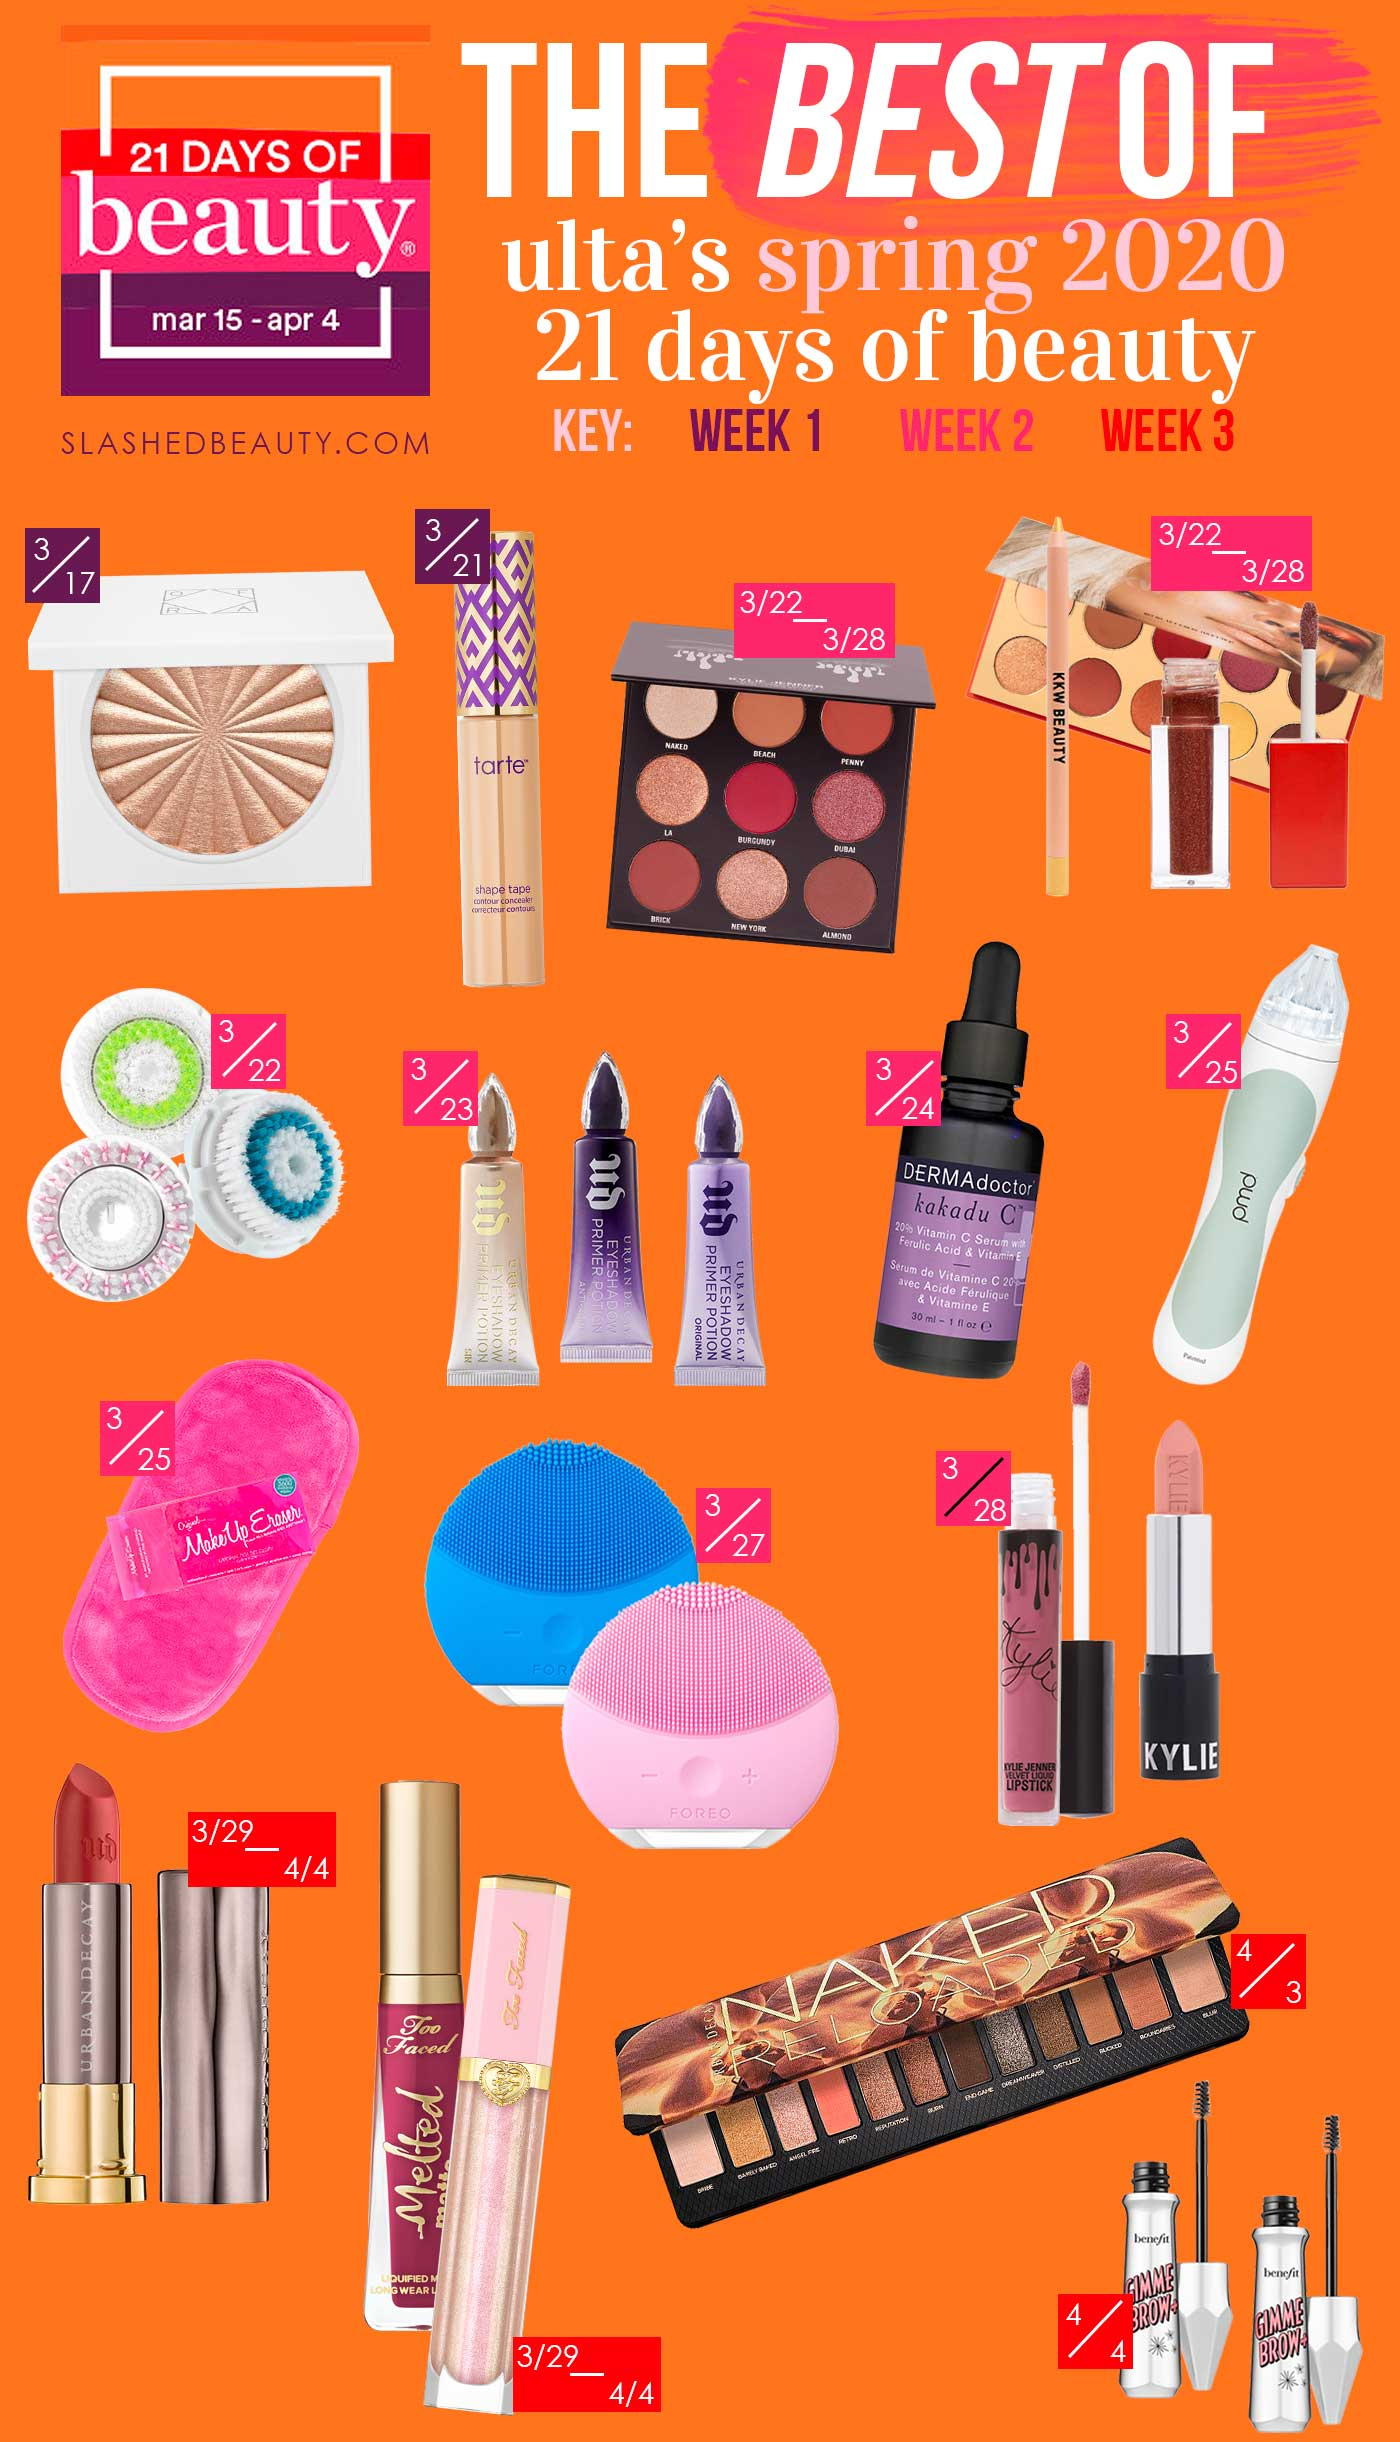 The 15 Best Ulta 21 Days of Beauty 2020 Spring Deals | What to Buy during the Ulta 21 Days of Beauty 2020 Sale | Slashed Beauty